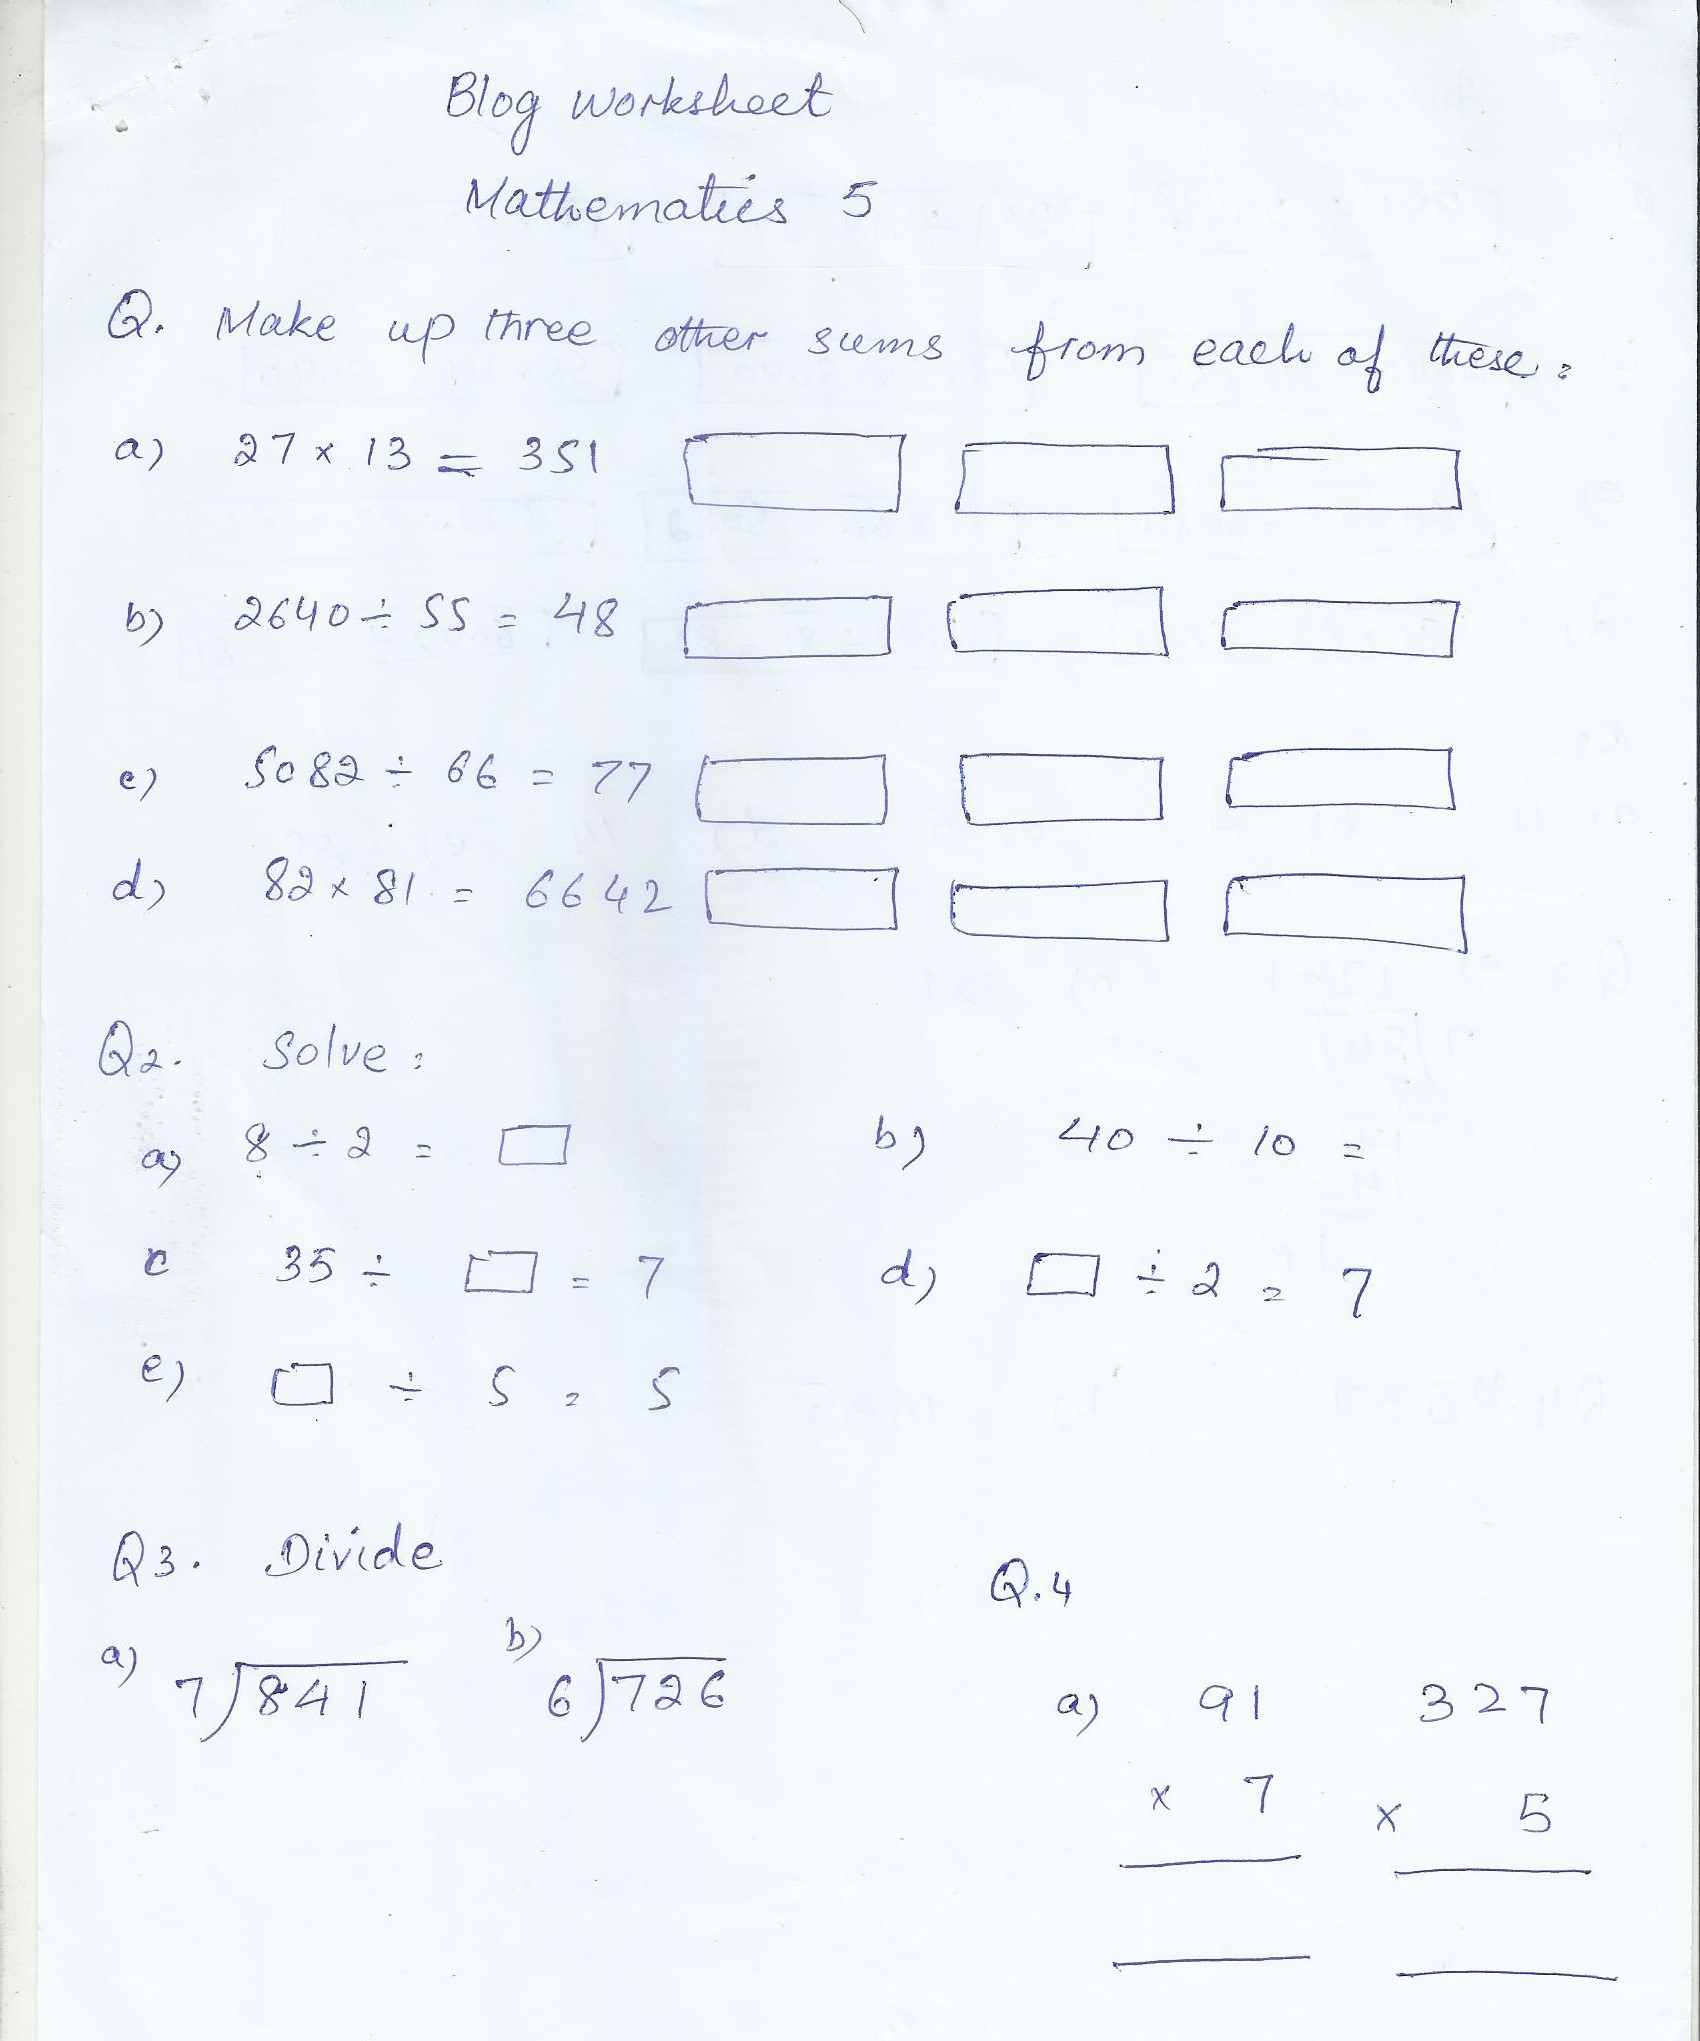 Math Blog Worksheet Class 5